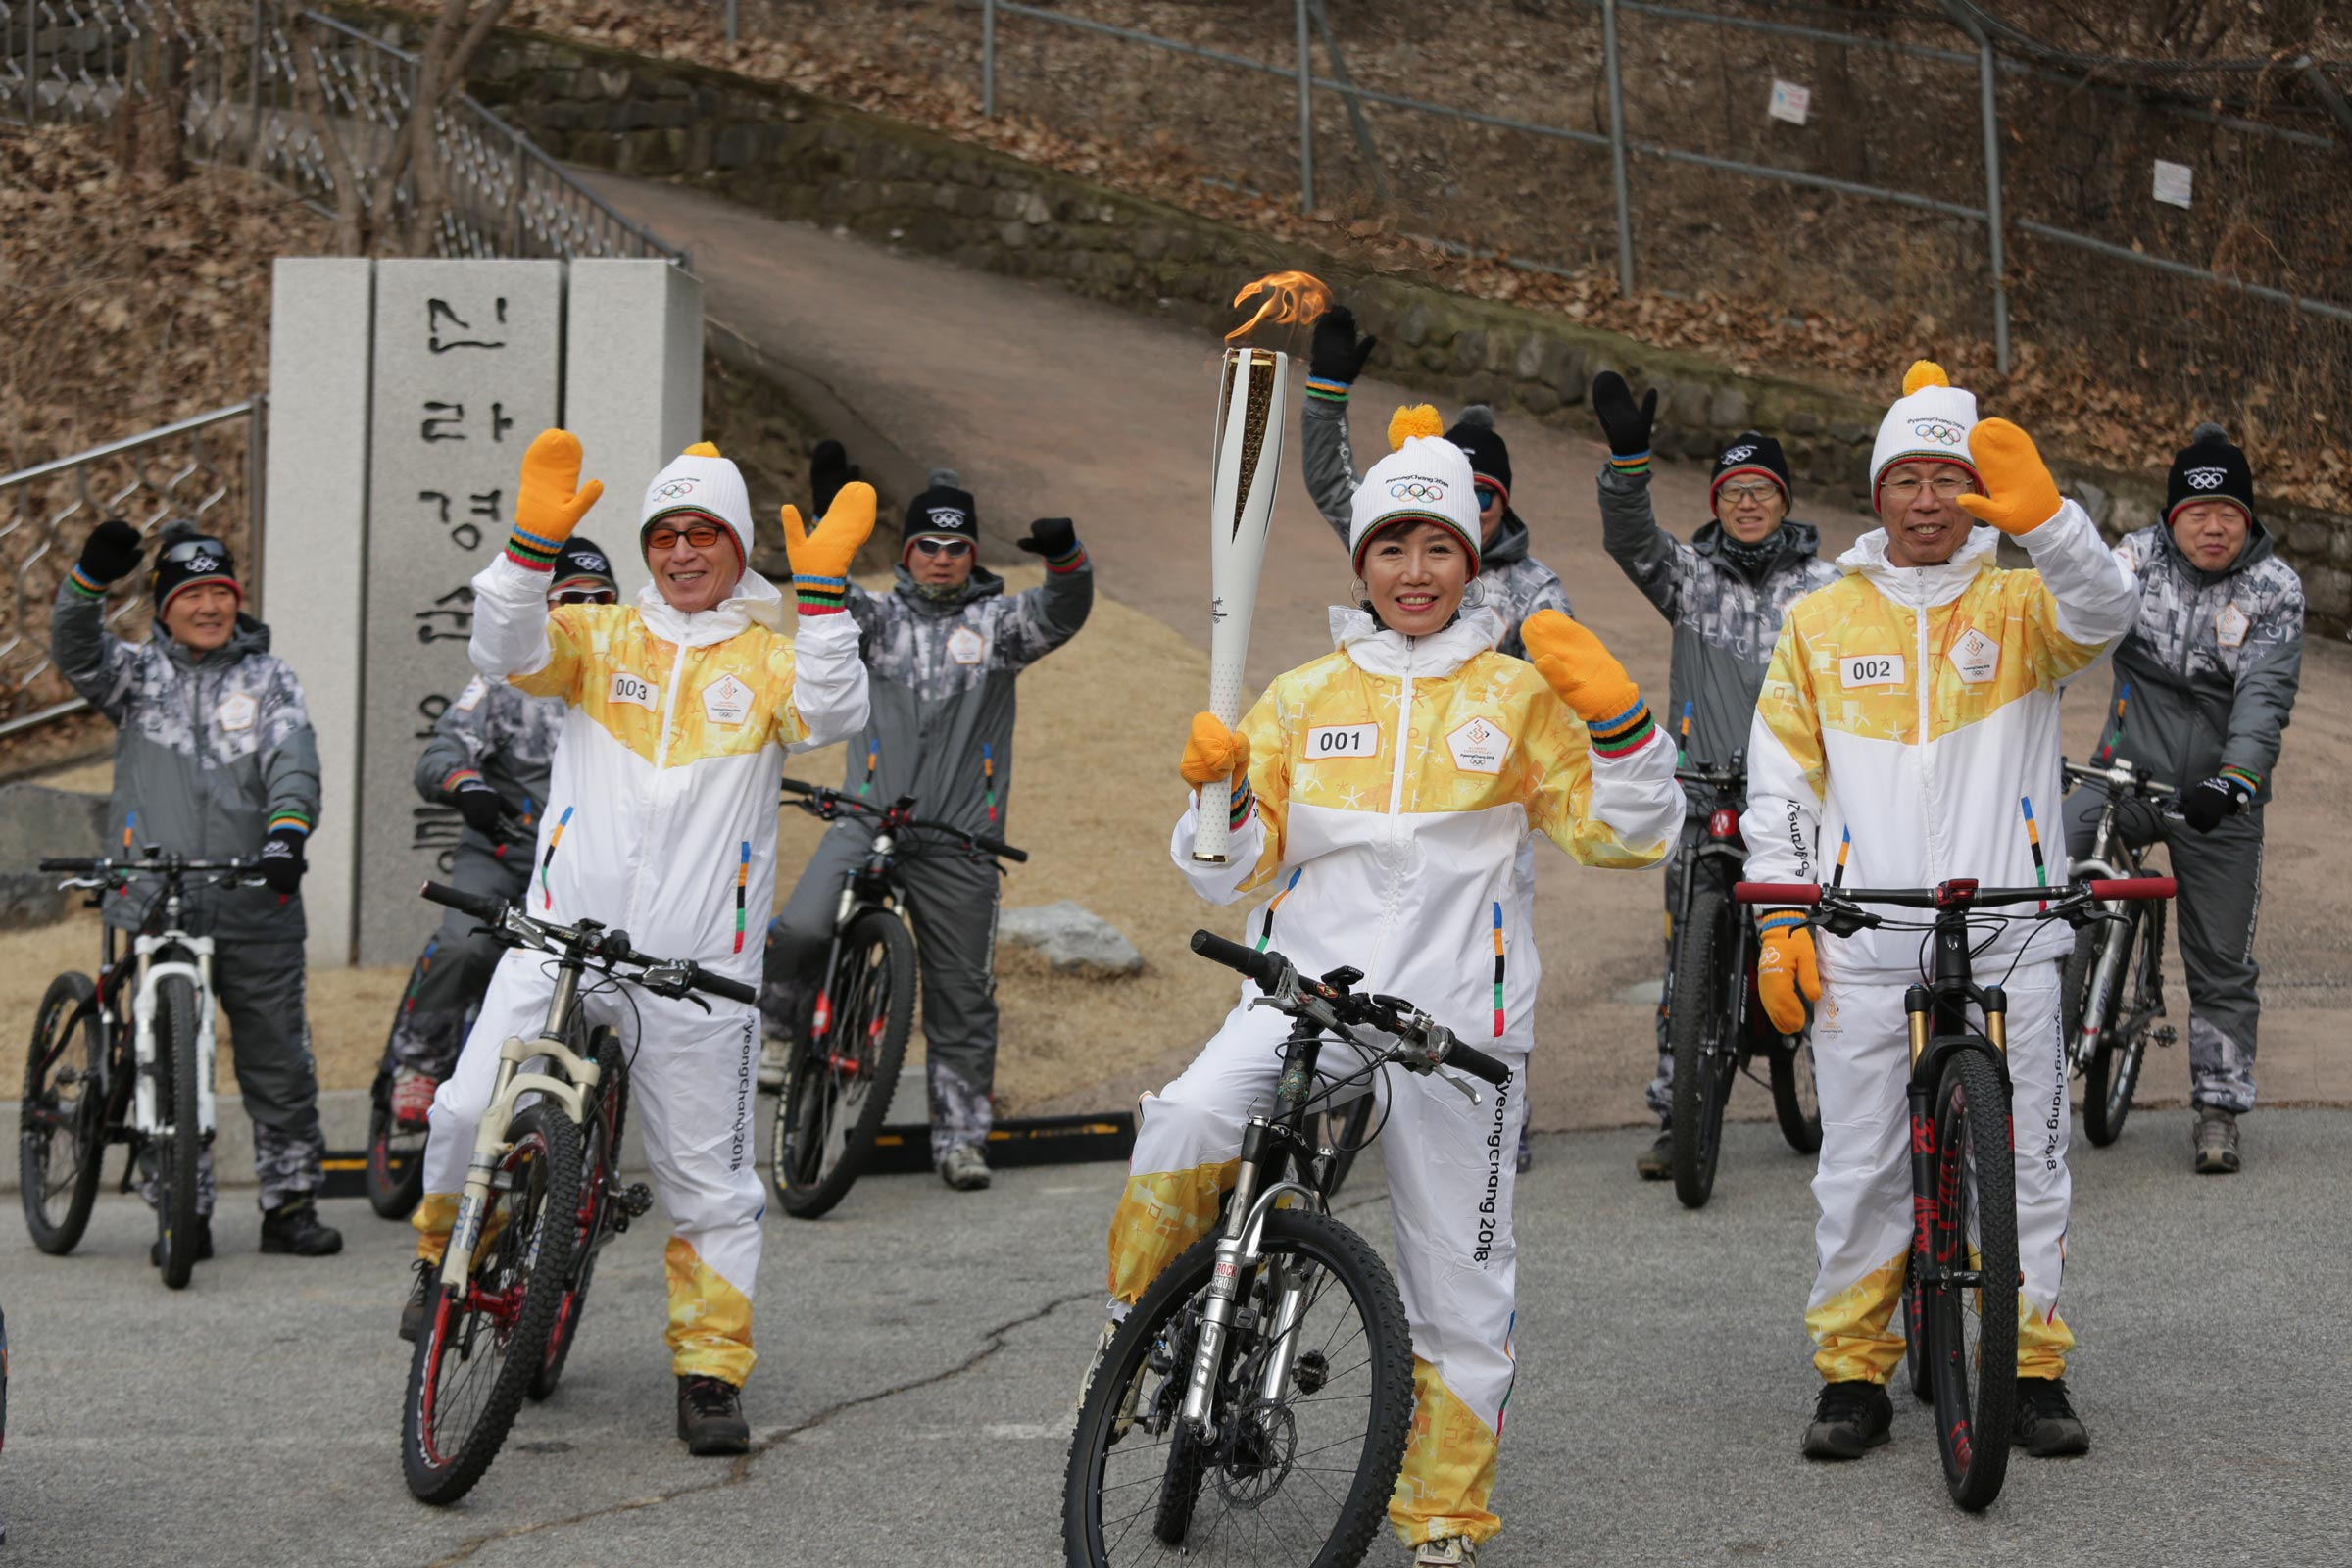 PyeongChang 2018 Olympic Torch Relay - Day 81